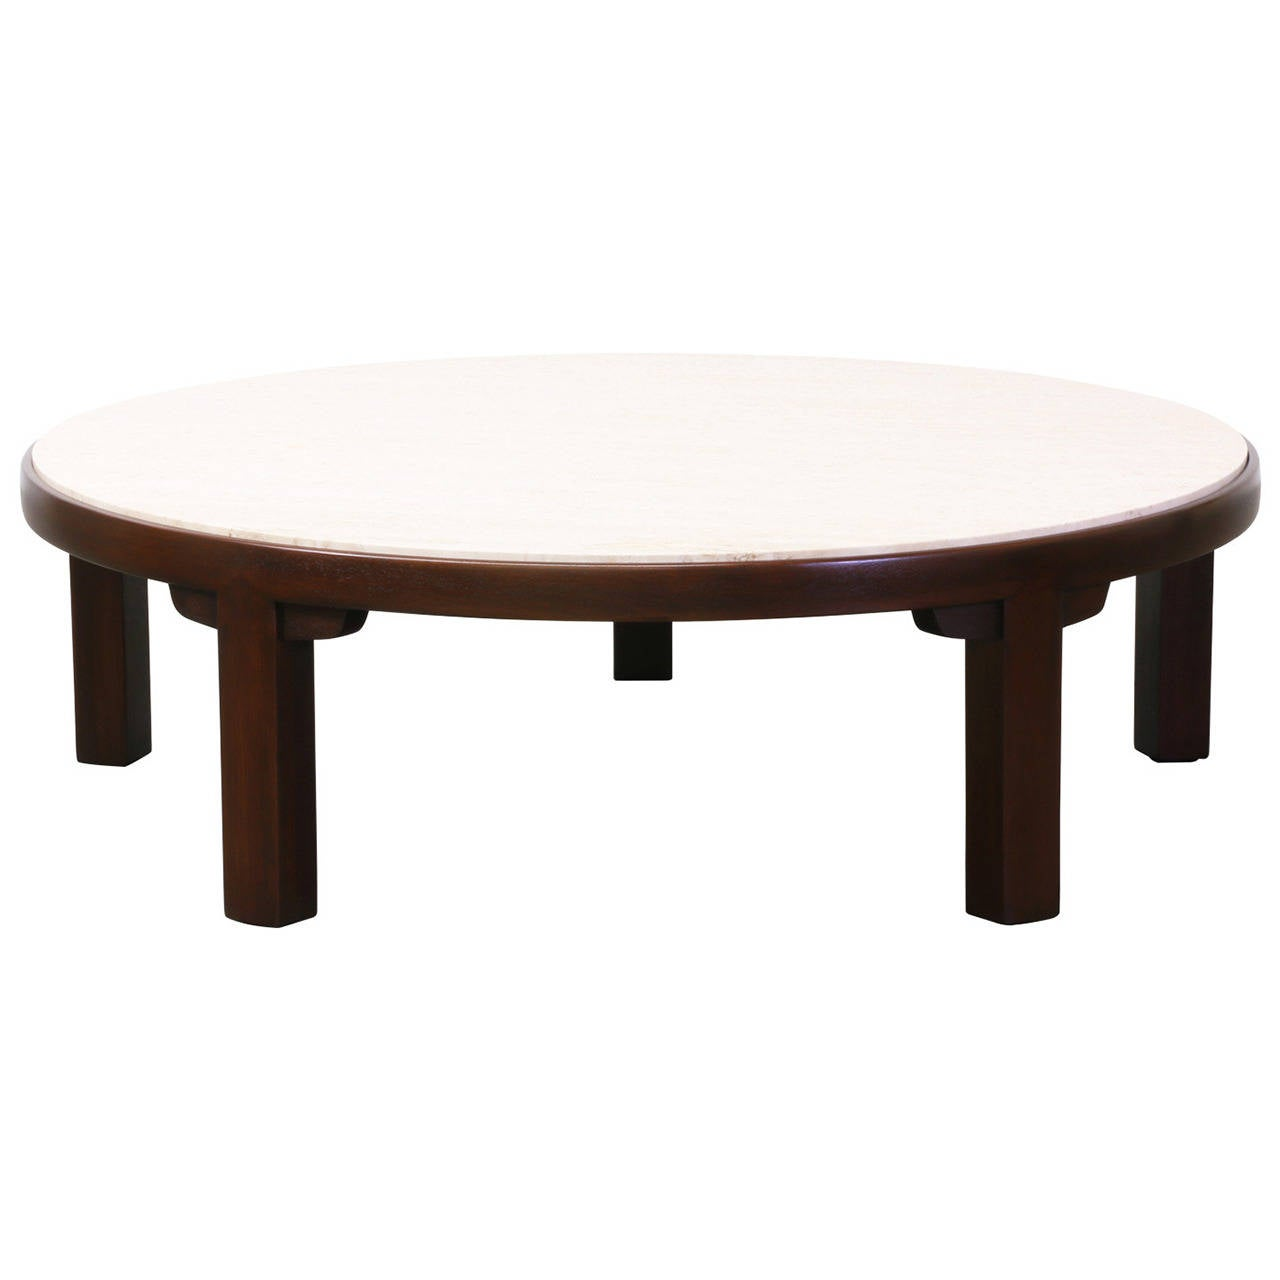 Edward J Wormley Coffee Table W Travertine Top For Dunbar At 1stdibs